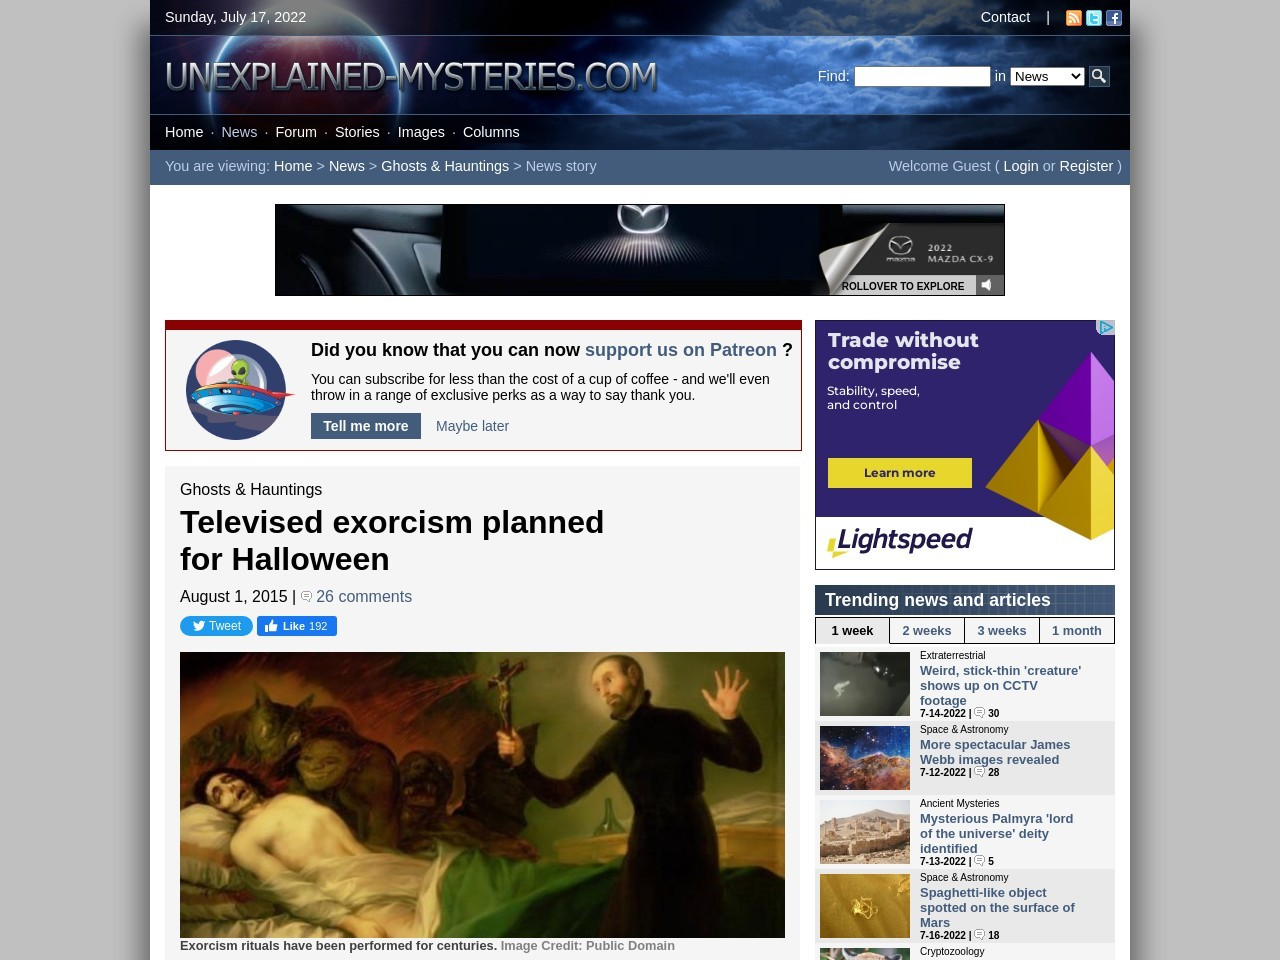 Televised exorcism planned for Halloween